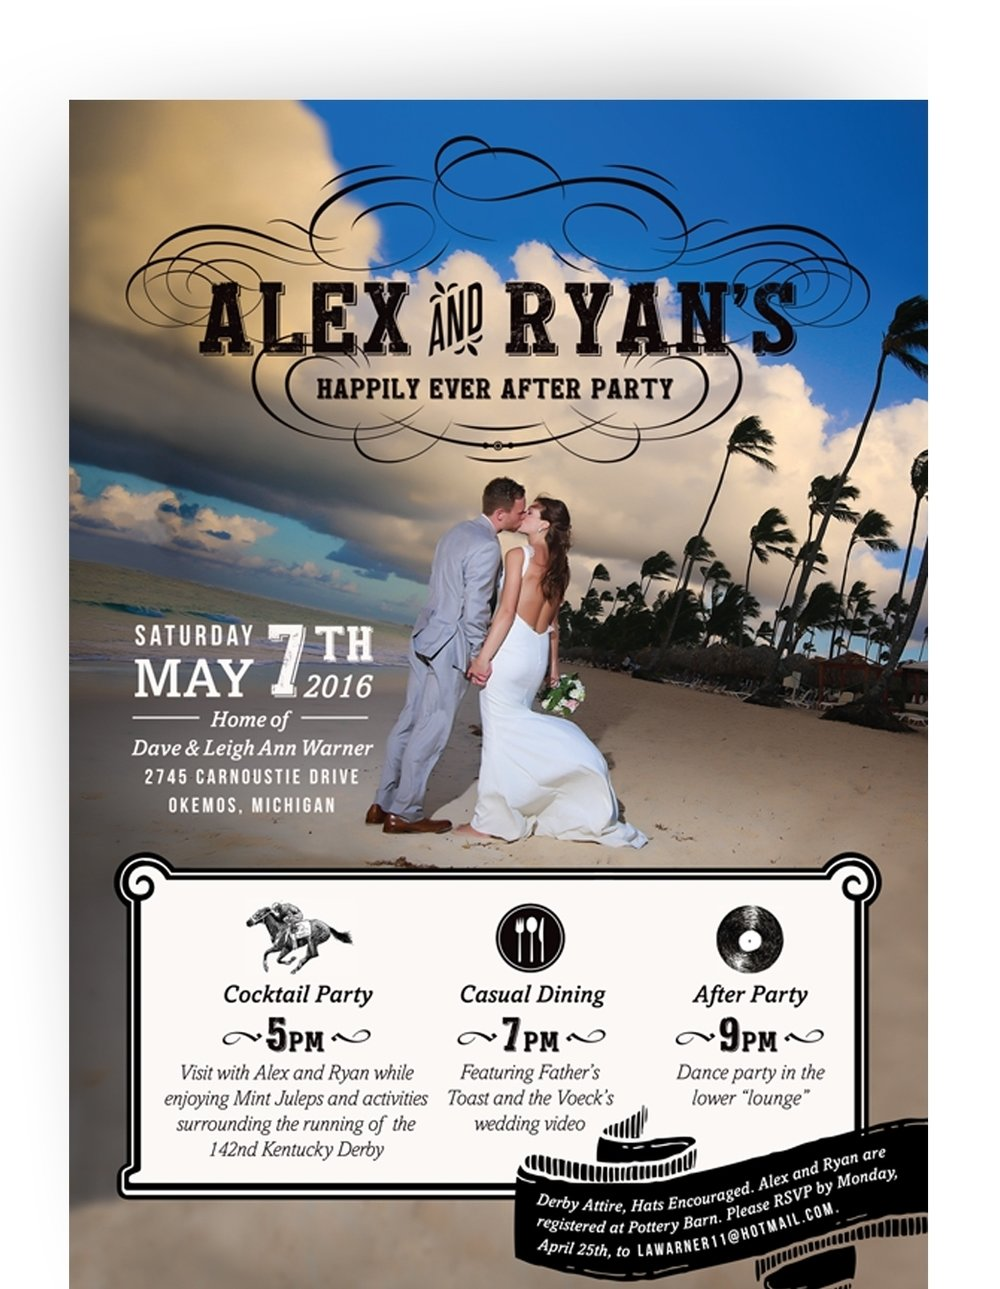 Happily ever after party invitation printed on double thick soft white paper.